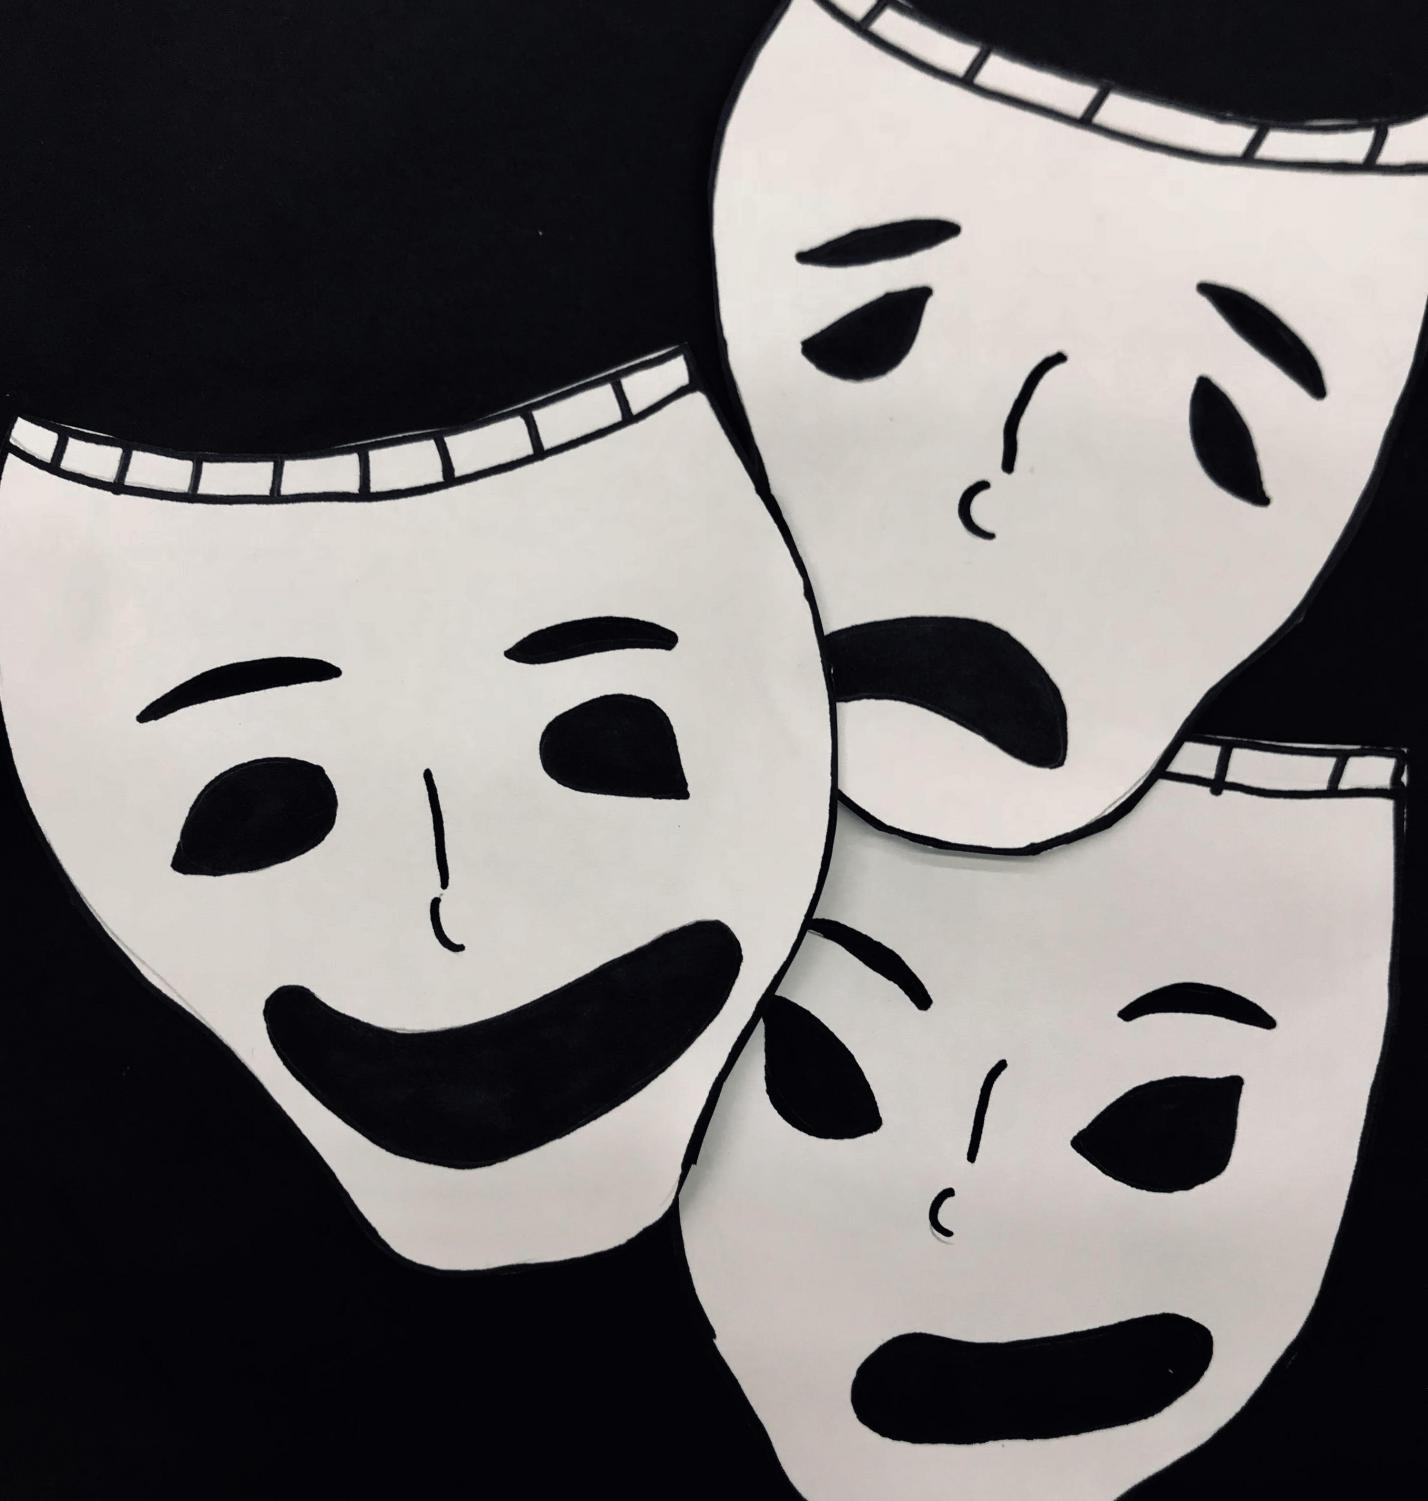 The many personalities that live within a person are often seen as 'masks' that one wears and switches off from frequently. All of which have their own moods and personalities as expressed by the masks shown.